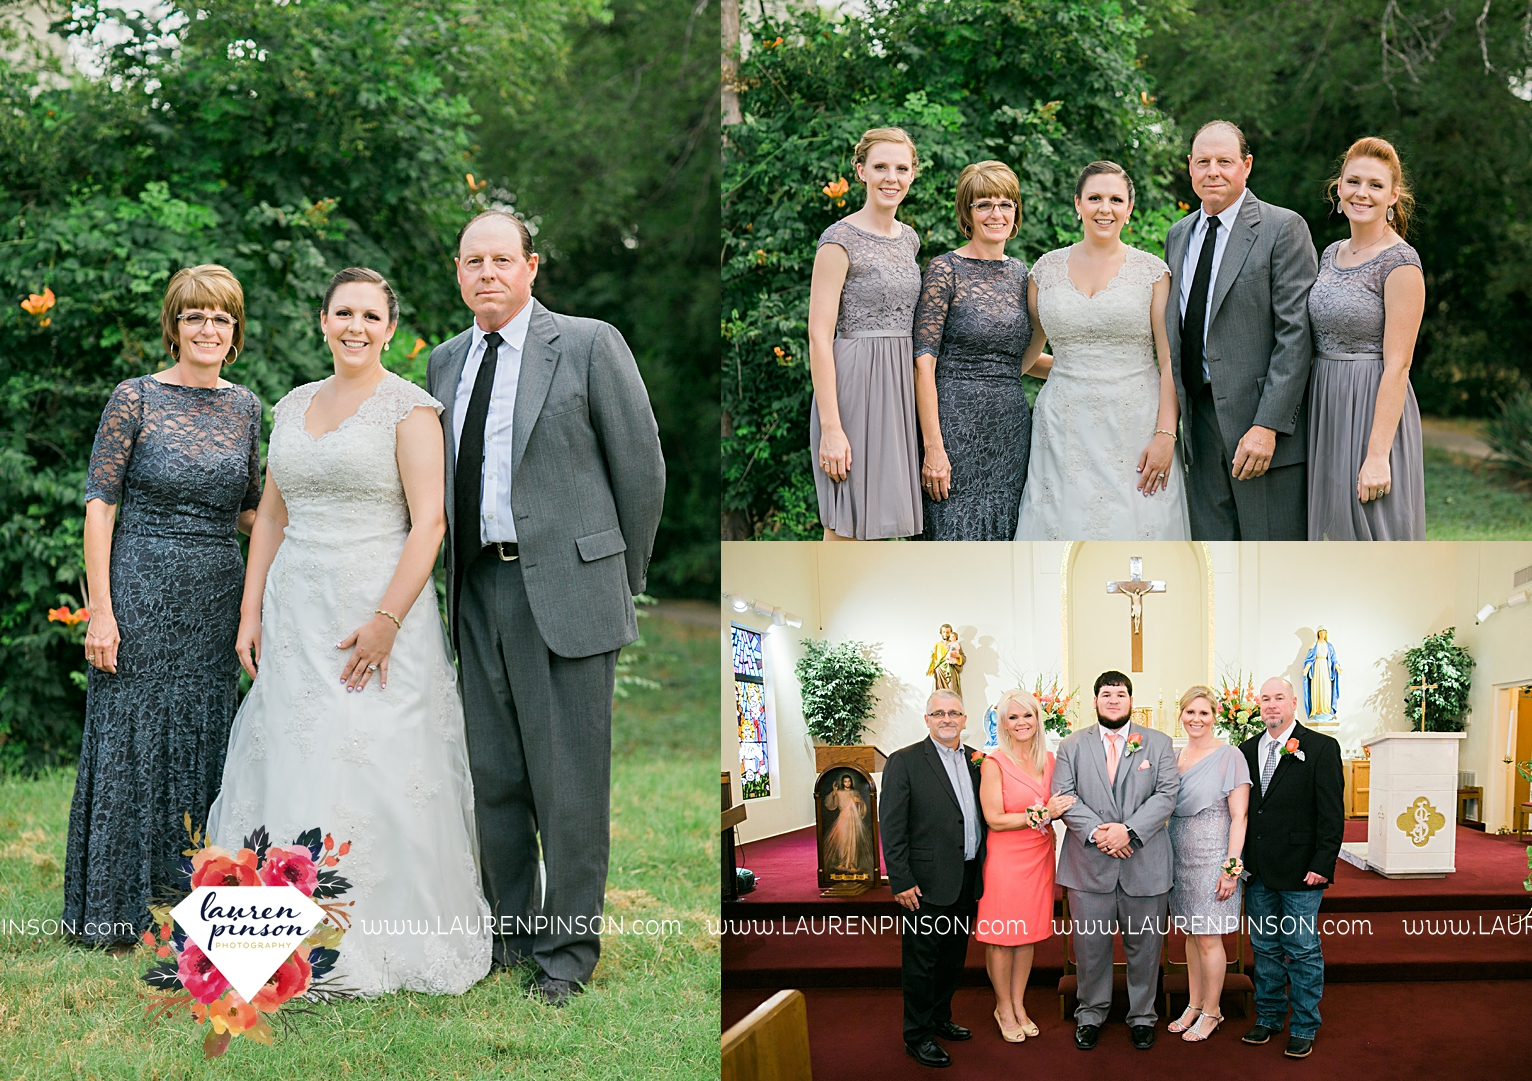 wichita-falls-texas-wedding-photography-seymour-st-marys-catholic-church-wedding-texas-photographer-00056.jpg